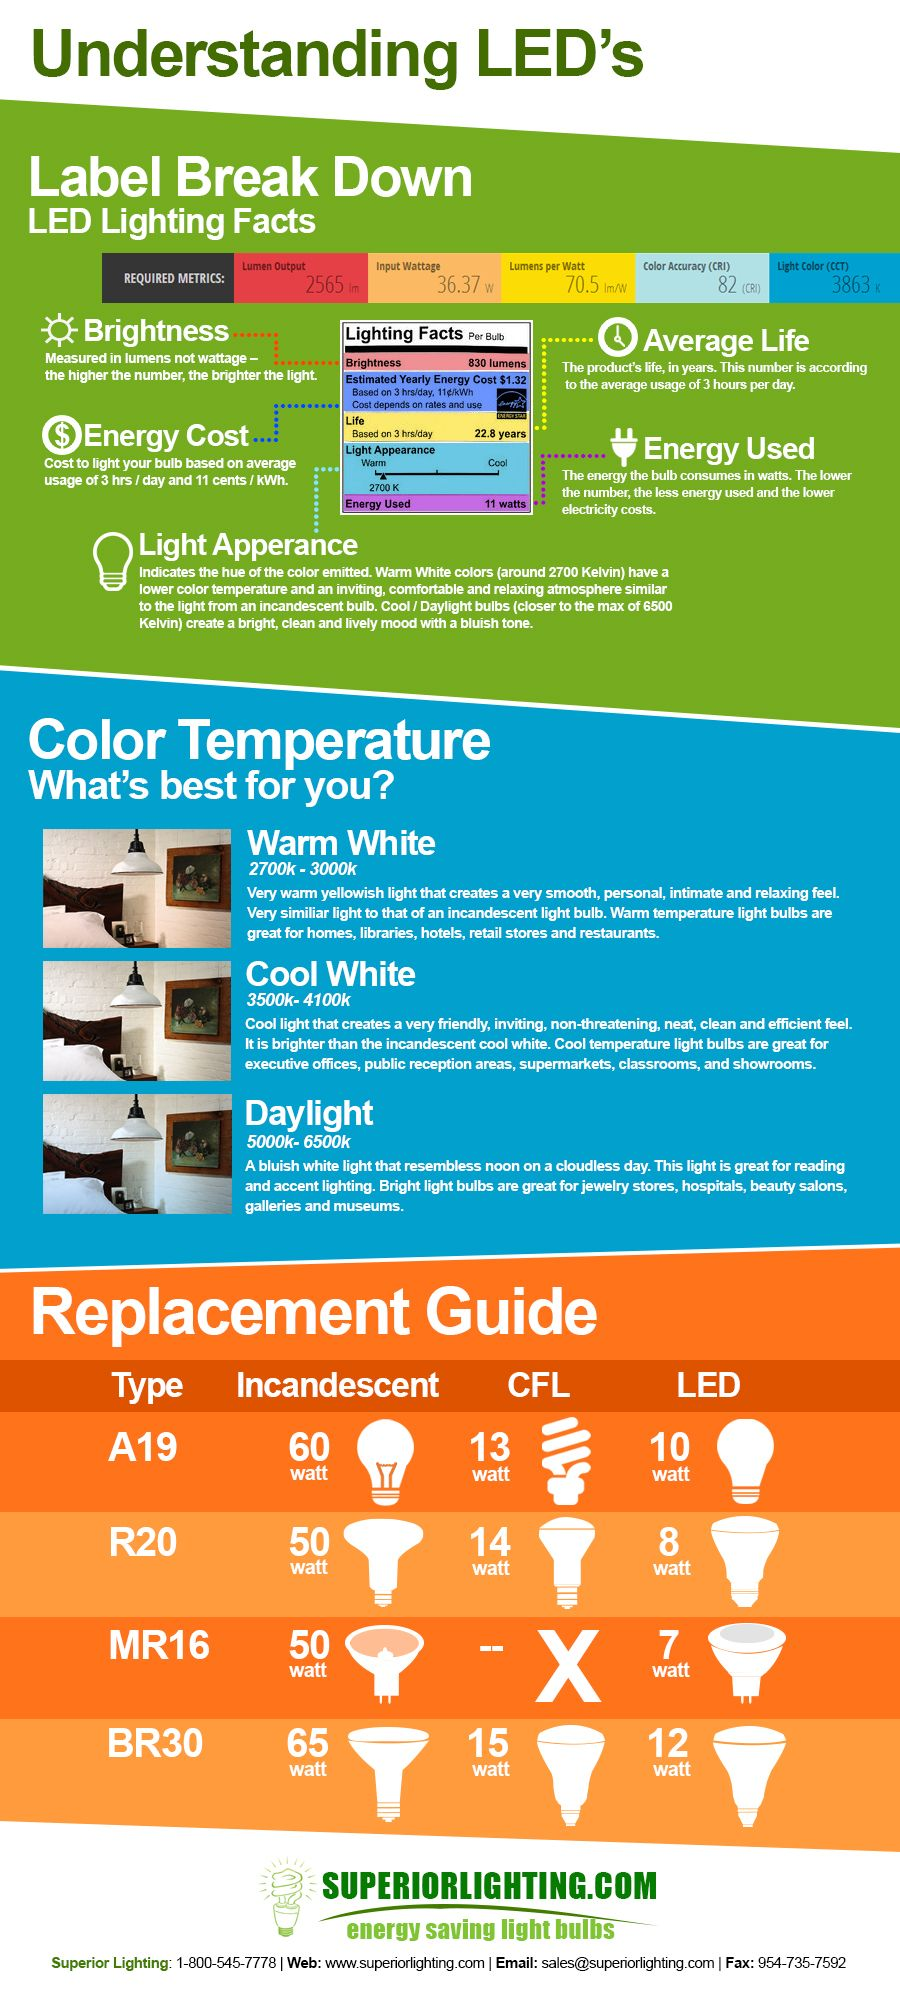 Lighting facts label reference guide